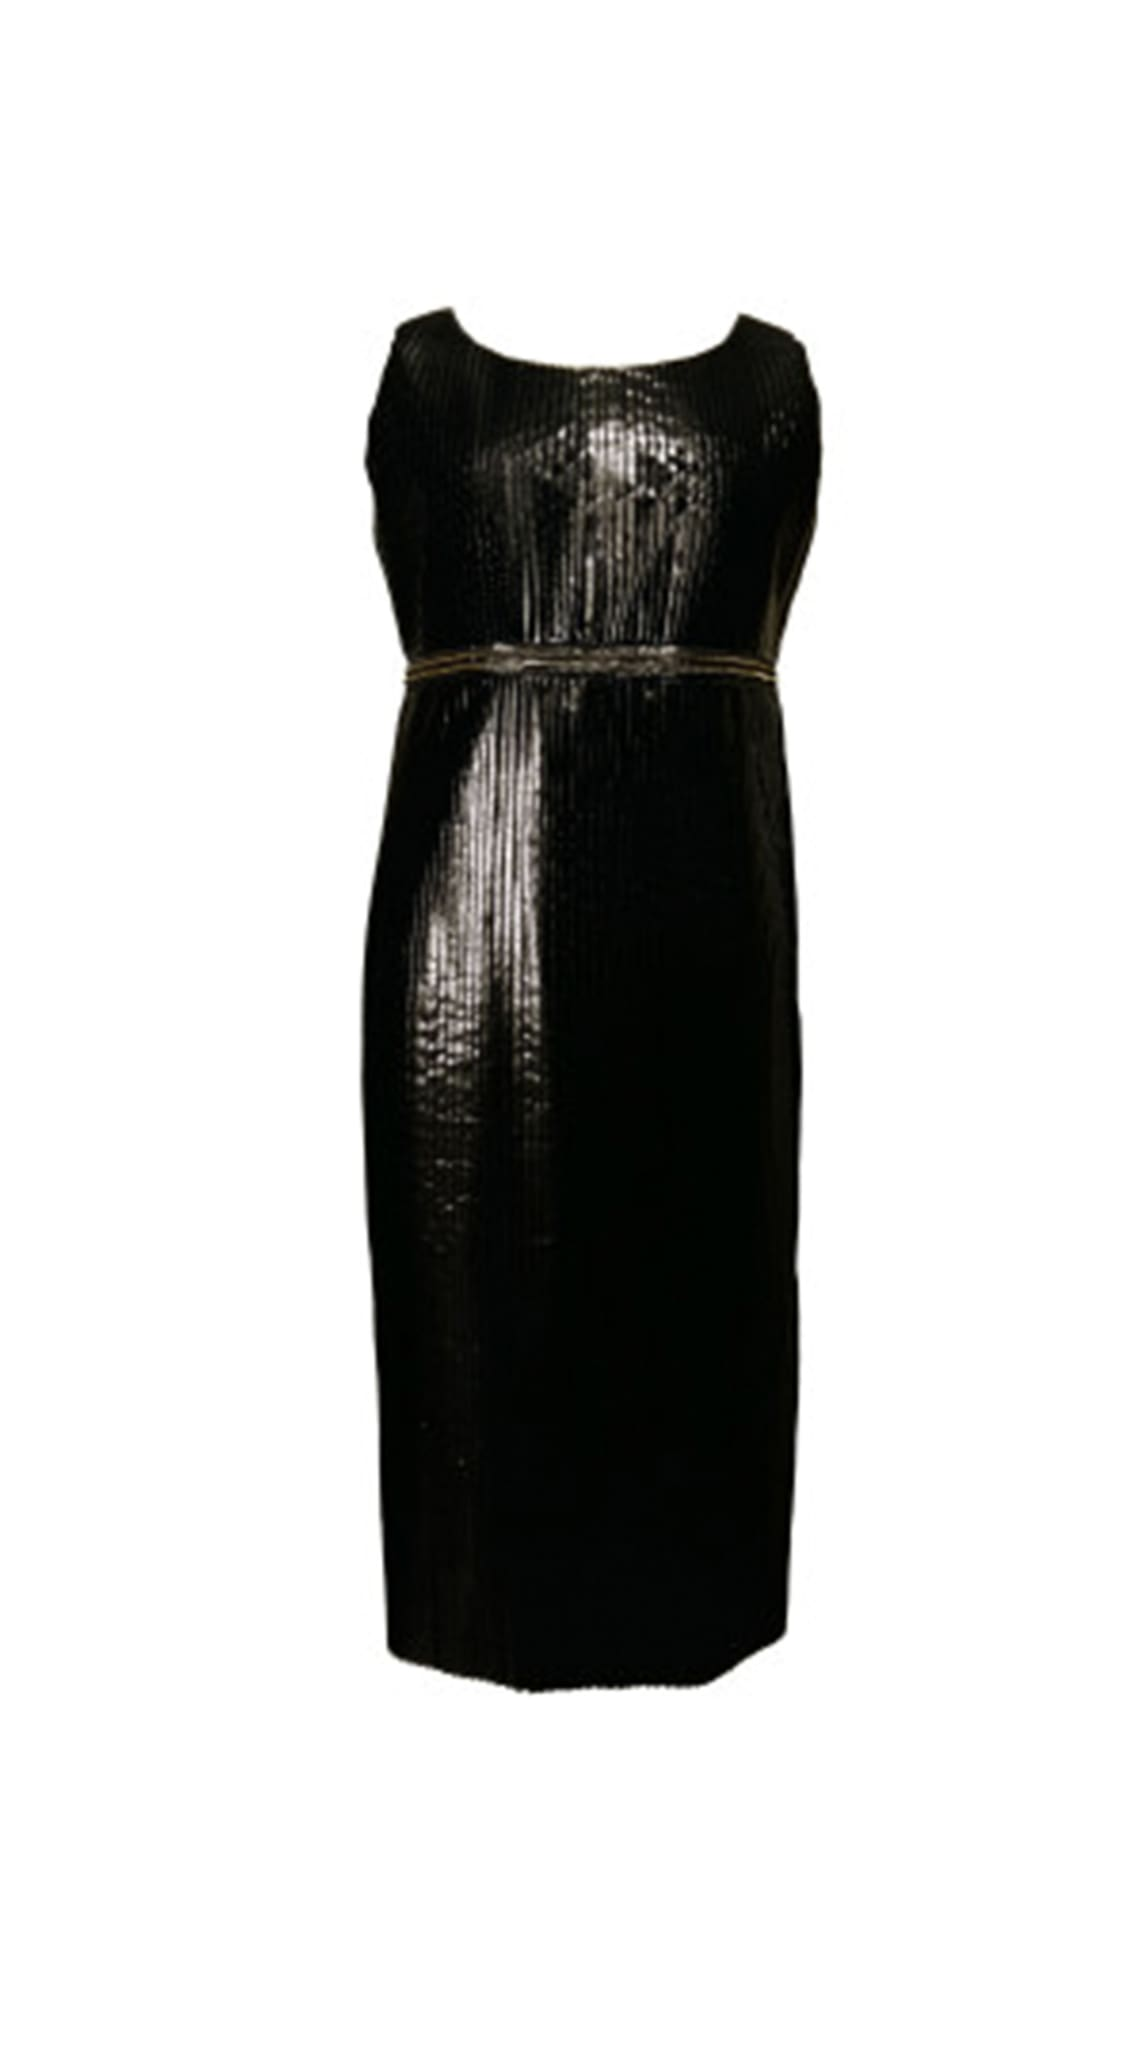 Black Metallic Pleated Column Dress by Chanho Jang | Nineteenth Amendment